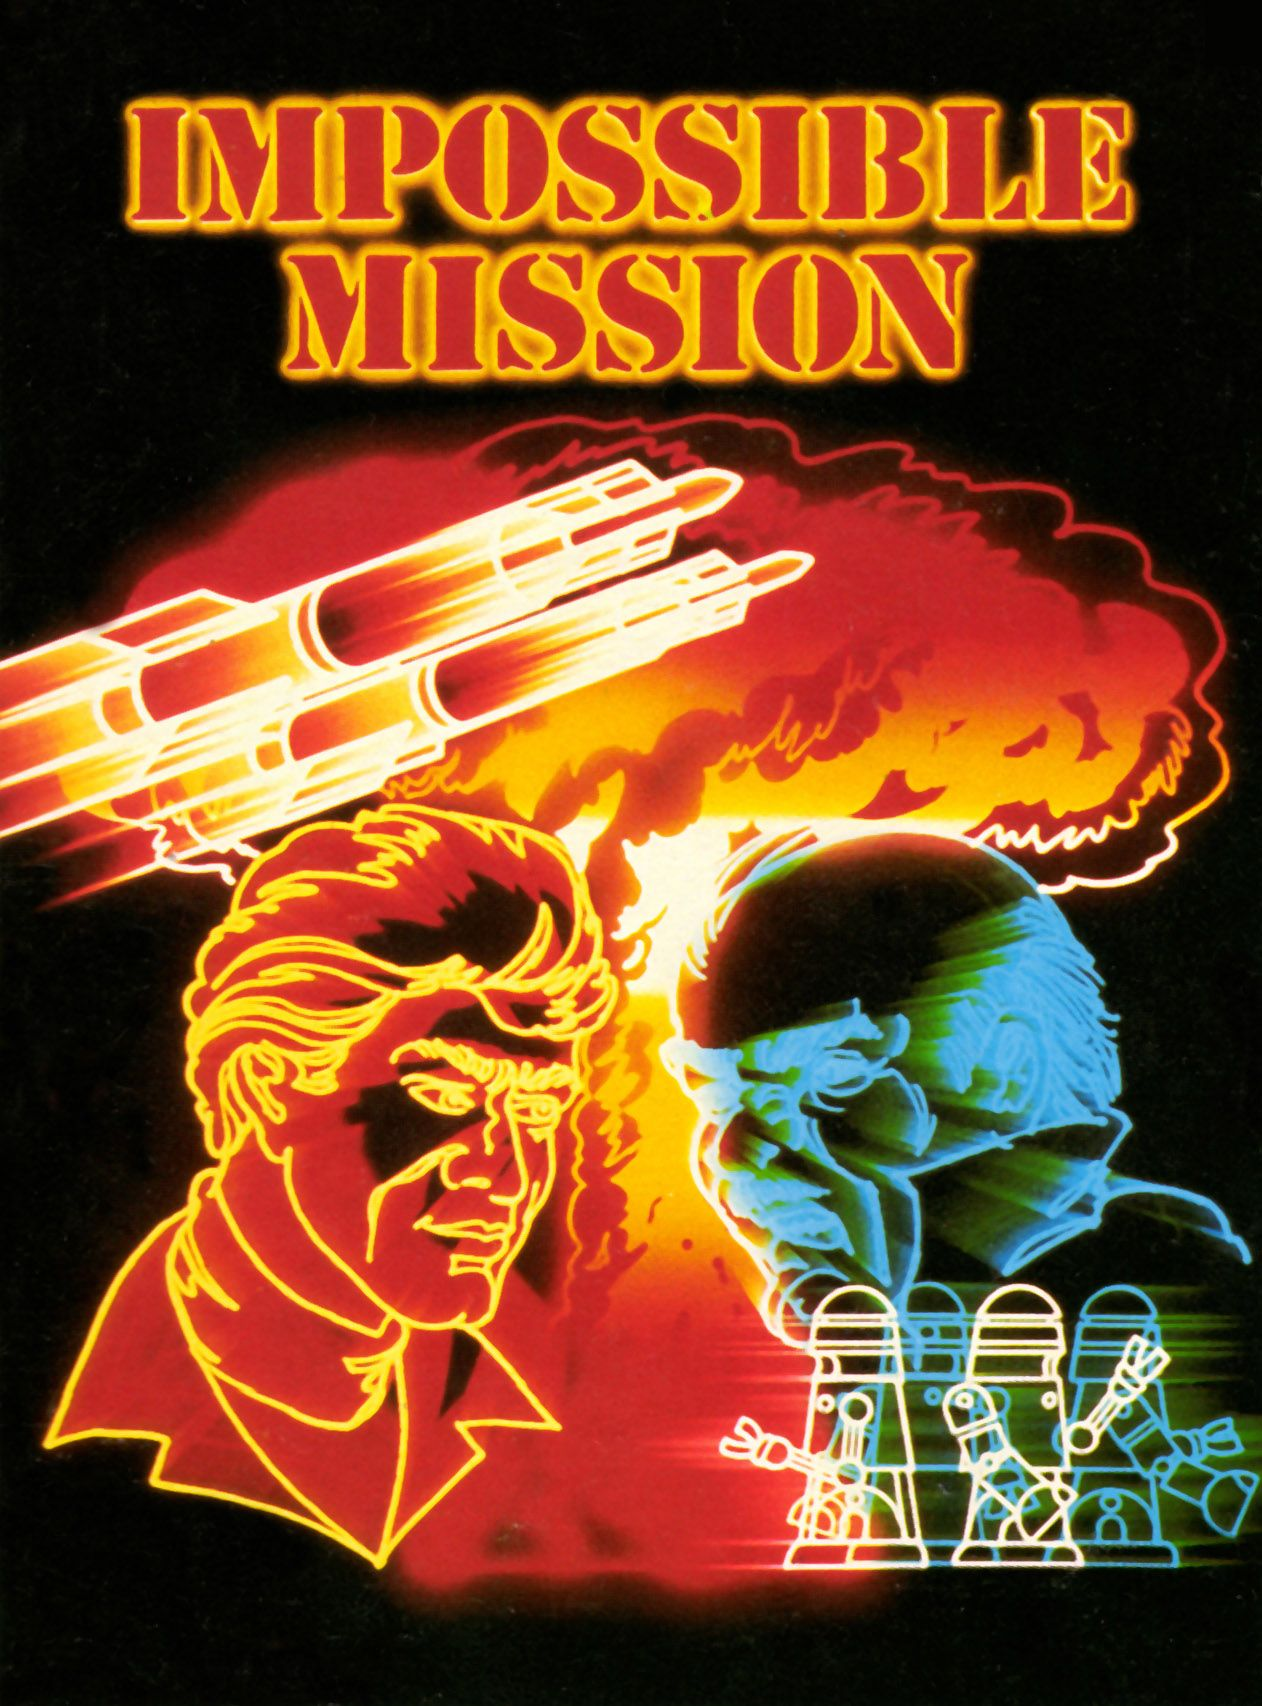 """Cover illustration for """"Impossible Mission,"""" an espionage"""